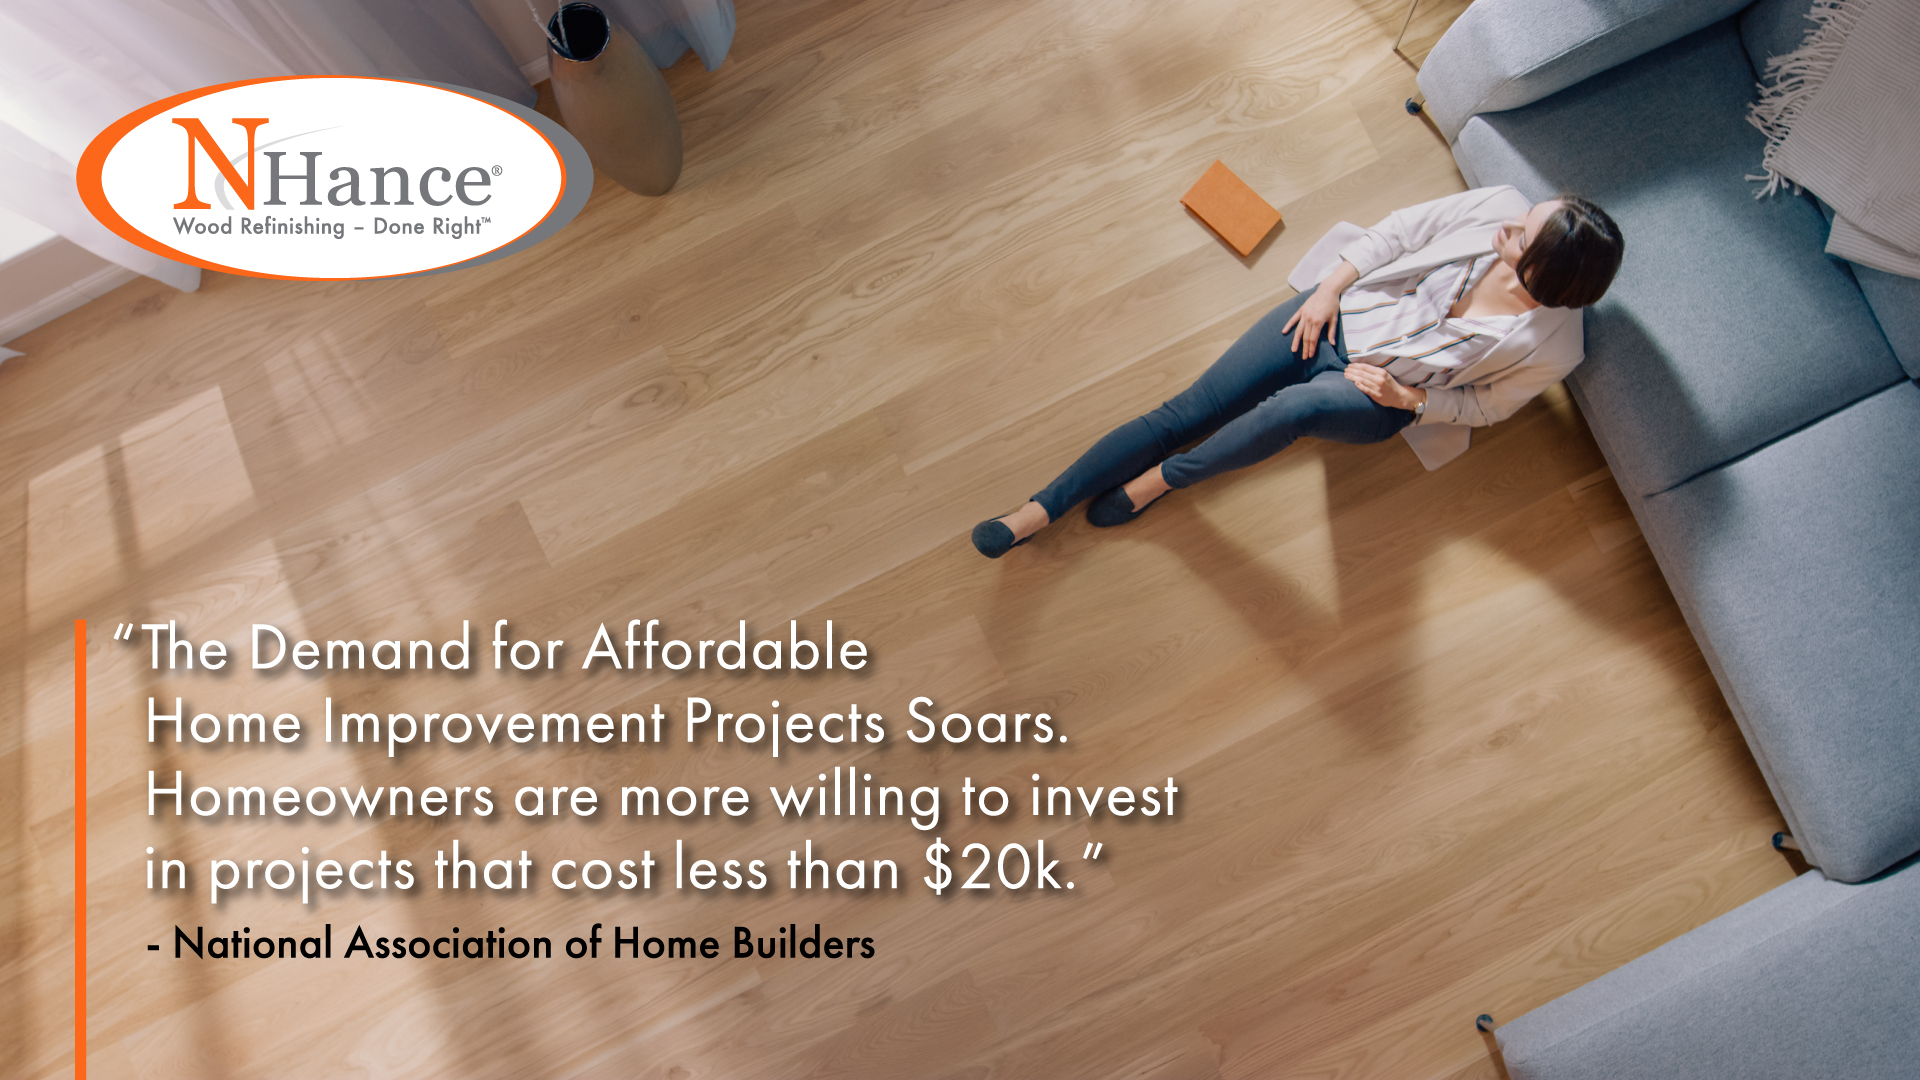 N-Hance franchise infographic about home improvement projects souring because homeowners want less expensive projects